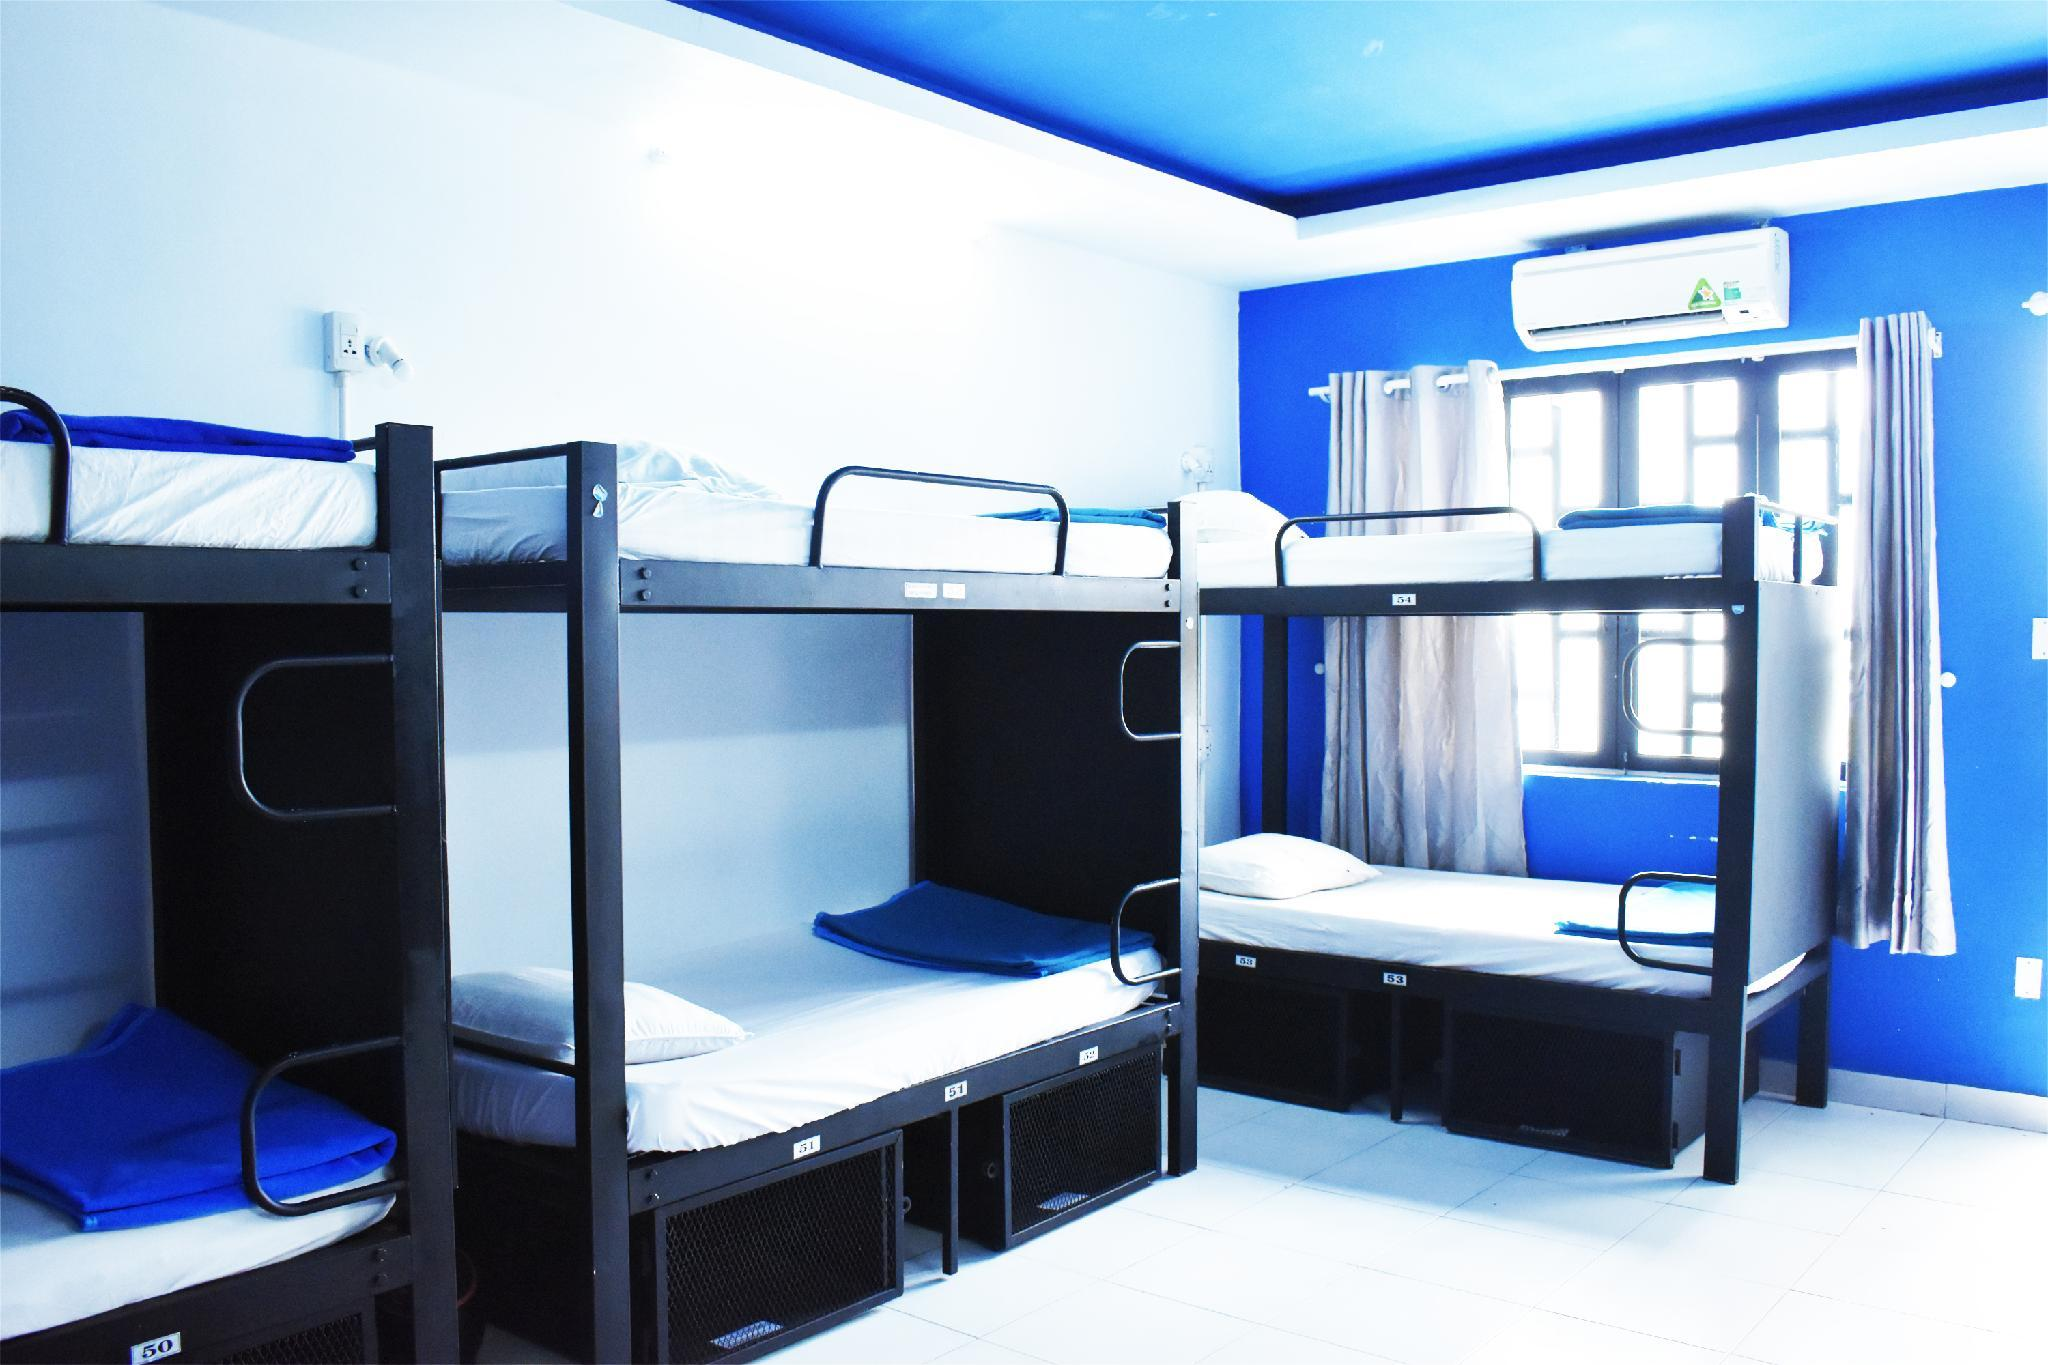 1 Bunk Bed in Dormitory - Mixed